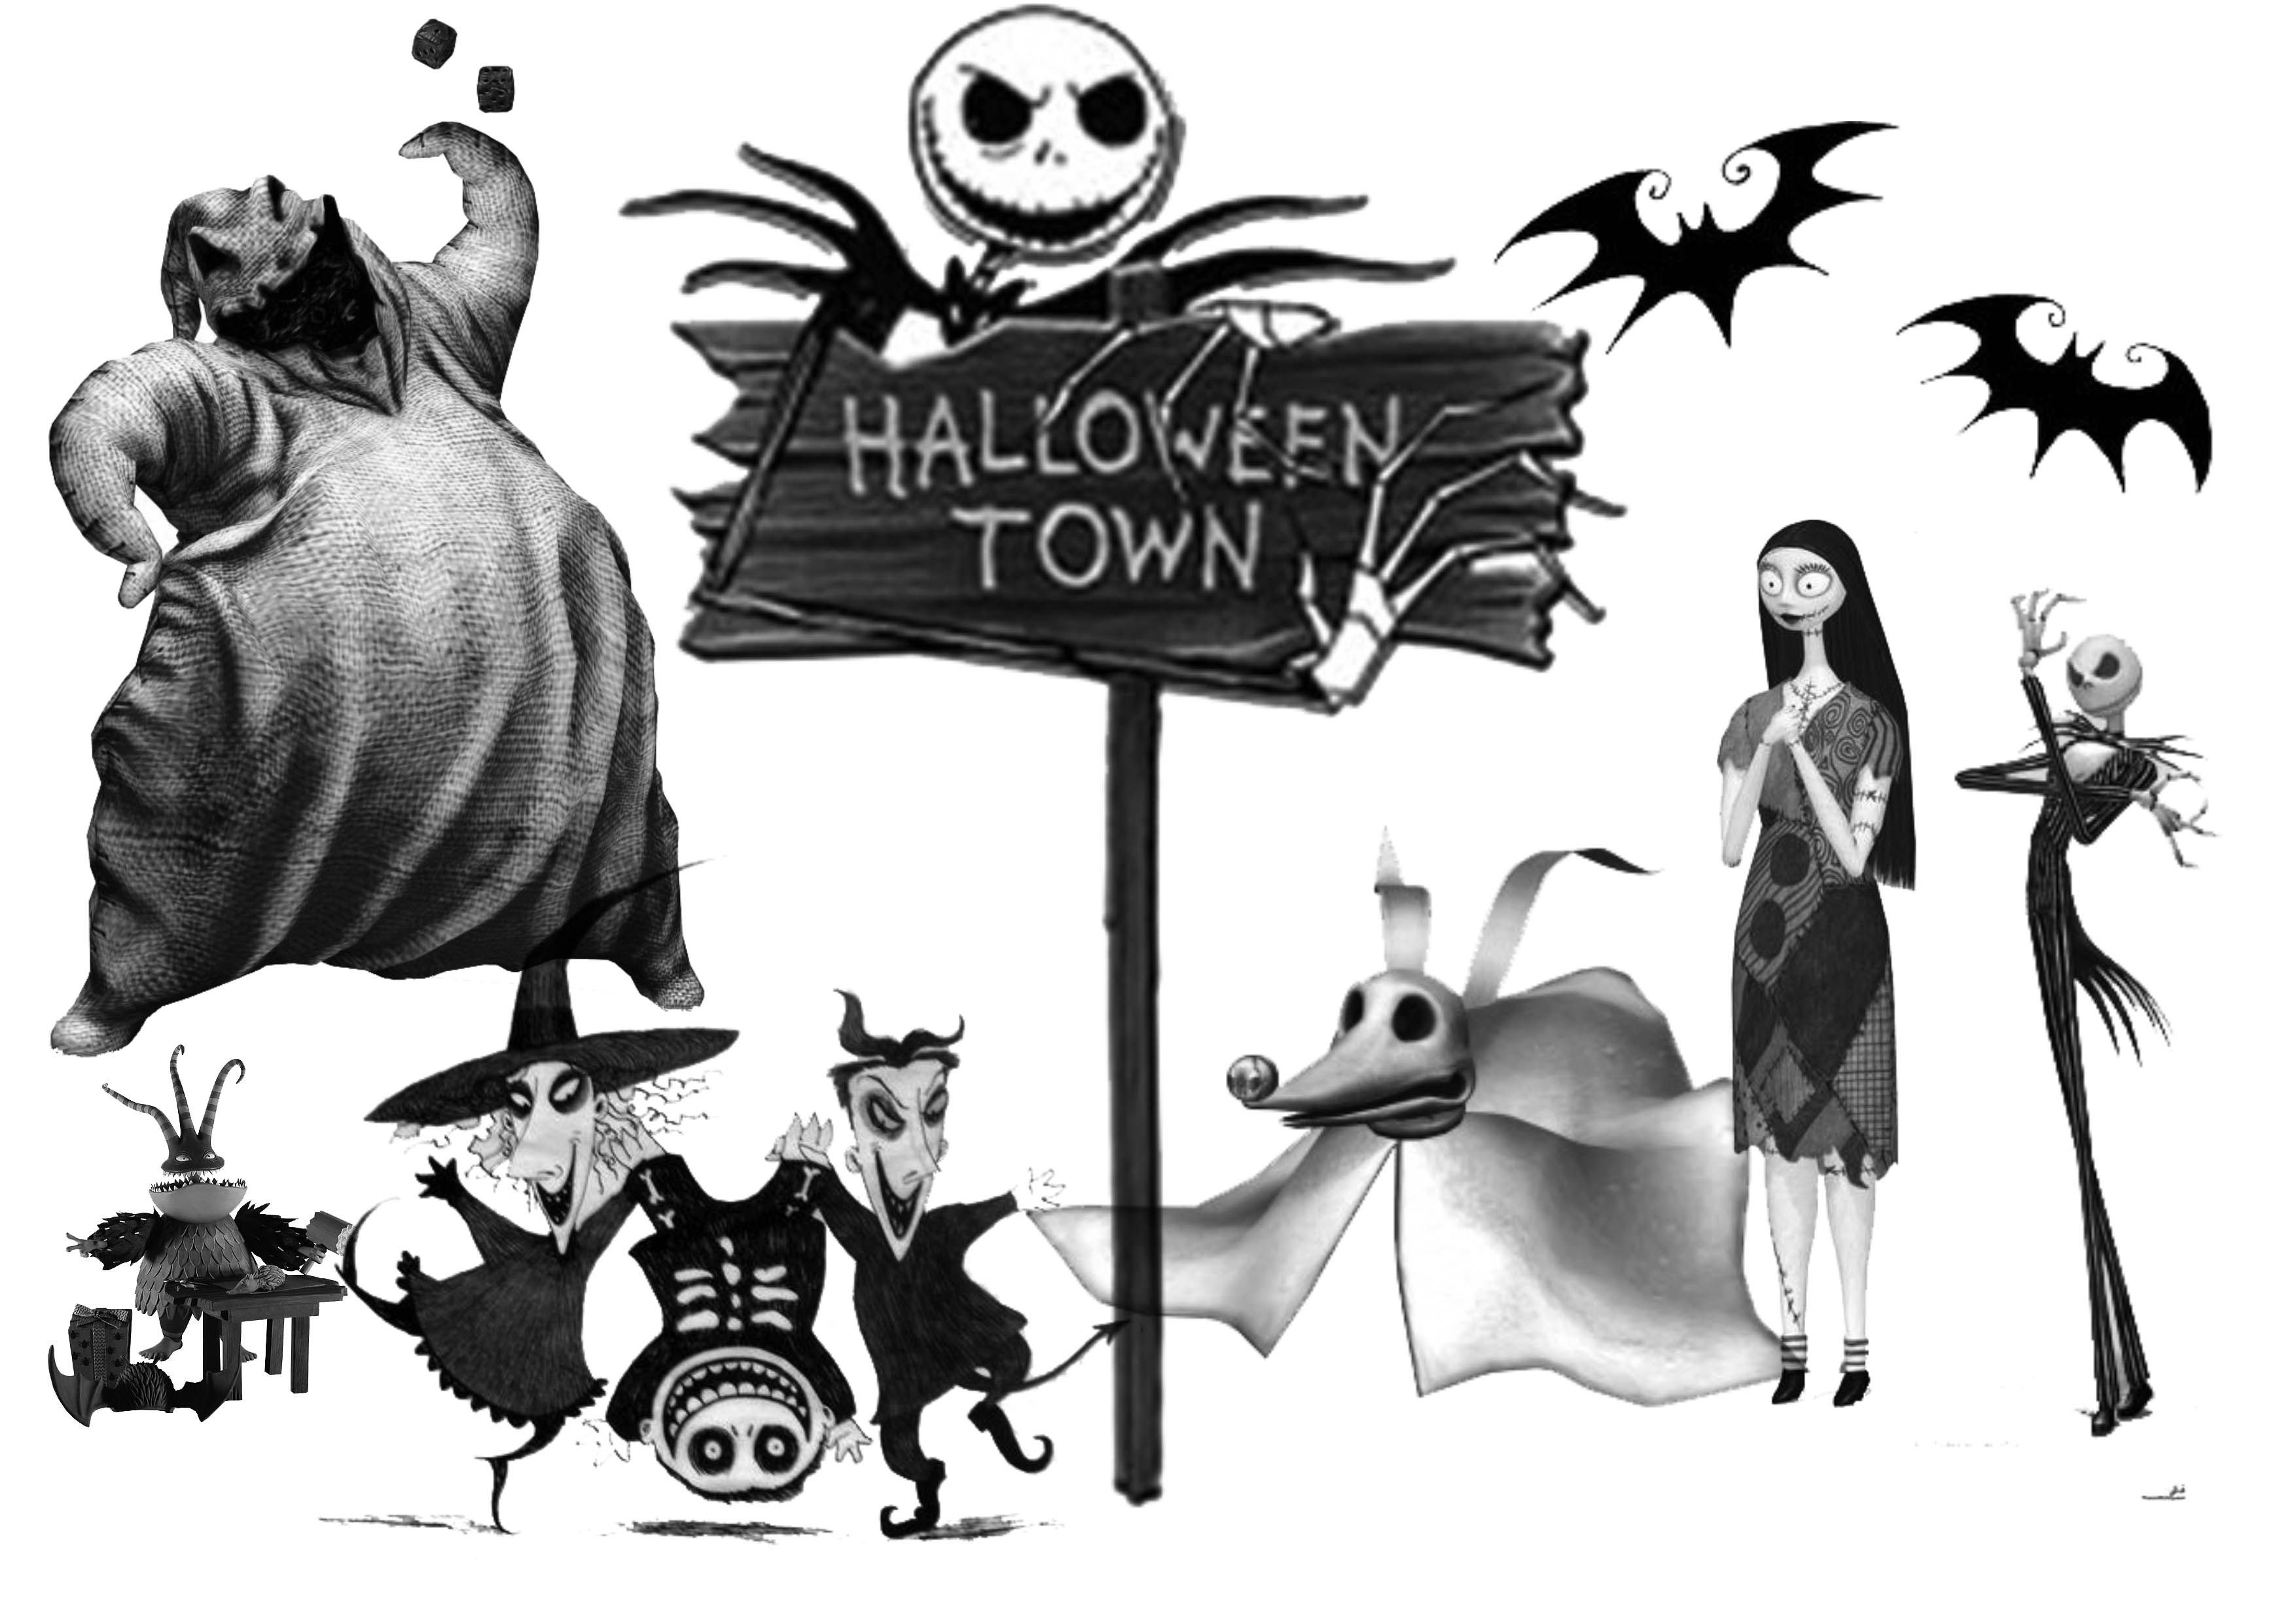 Nightmare Before Christmas Coloring Page Nightmare Before Christmas Wallpaper Nightmare Before Christmas Characters Nightmare Before Christmas